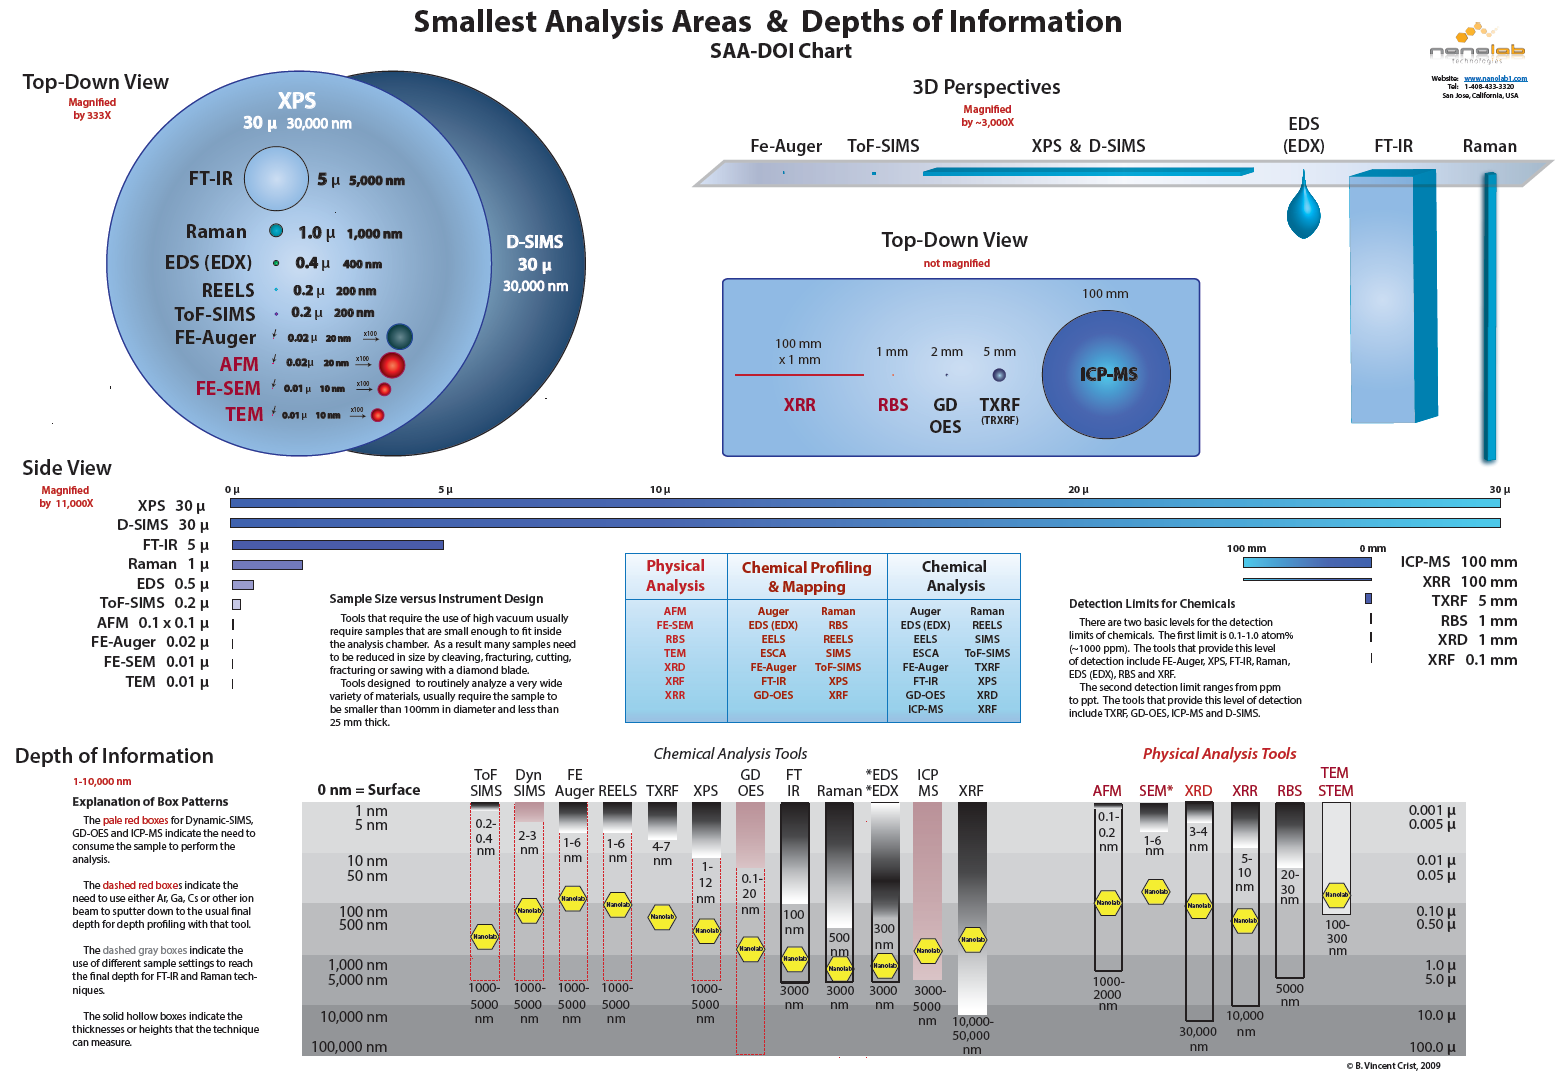 Smallest Analysis Areas and Depths of Information Chart - Nanolab